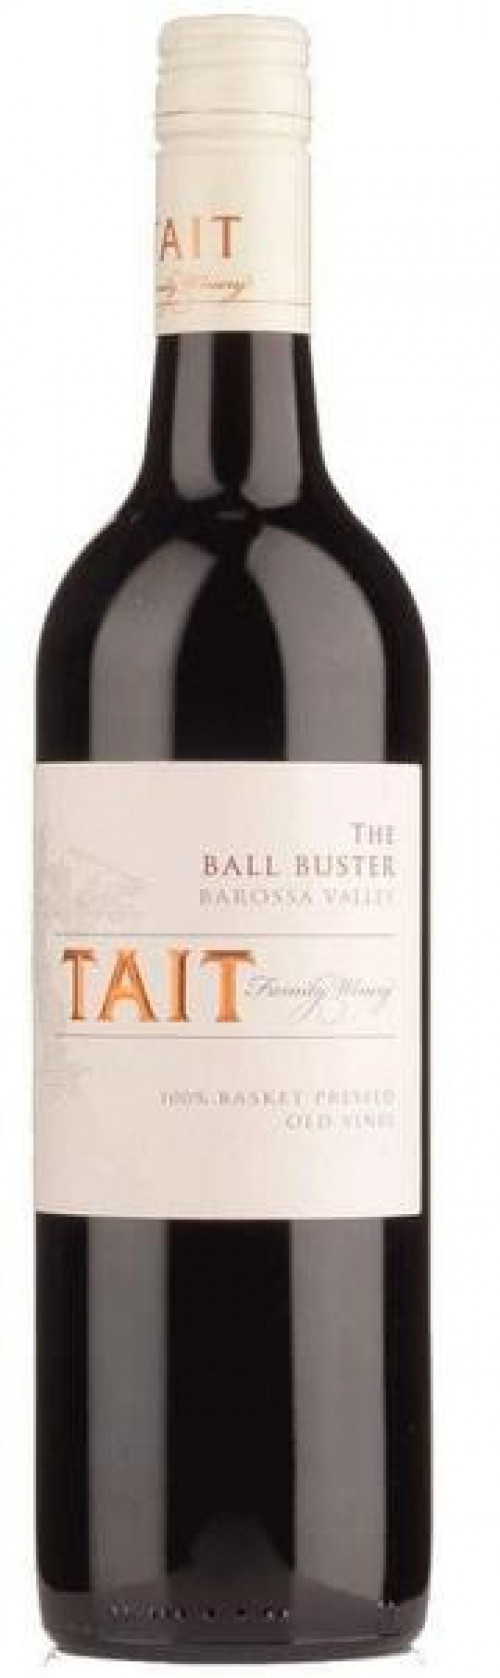 Tait The Ball Buster 750ml